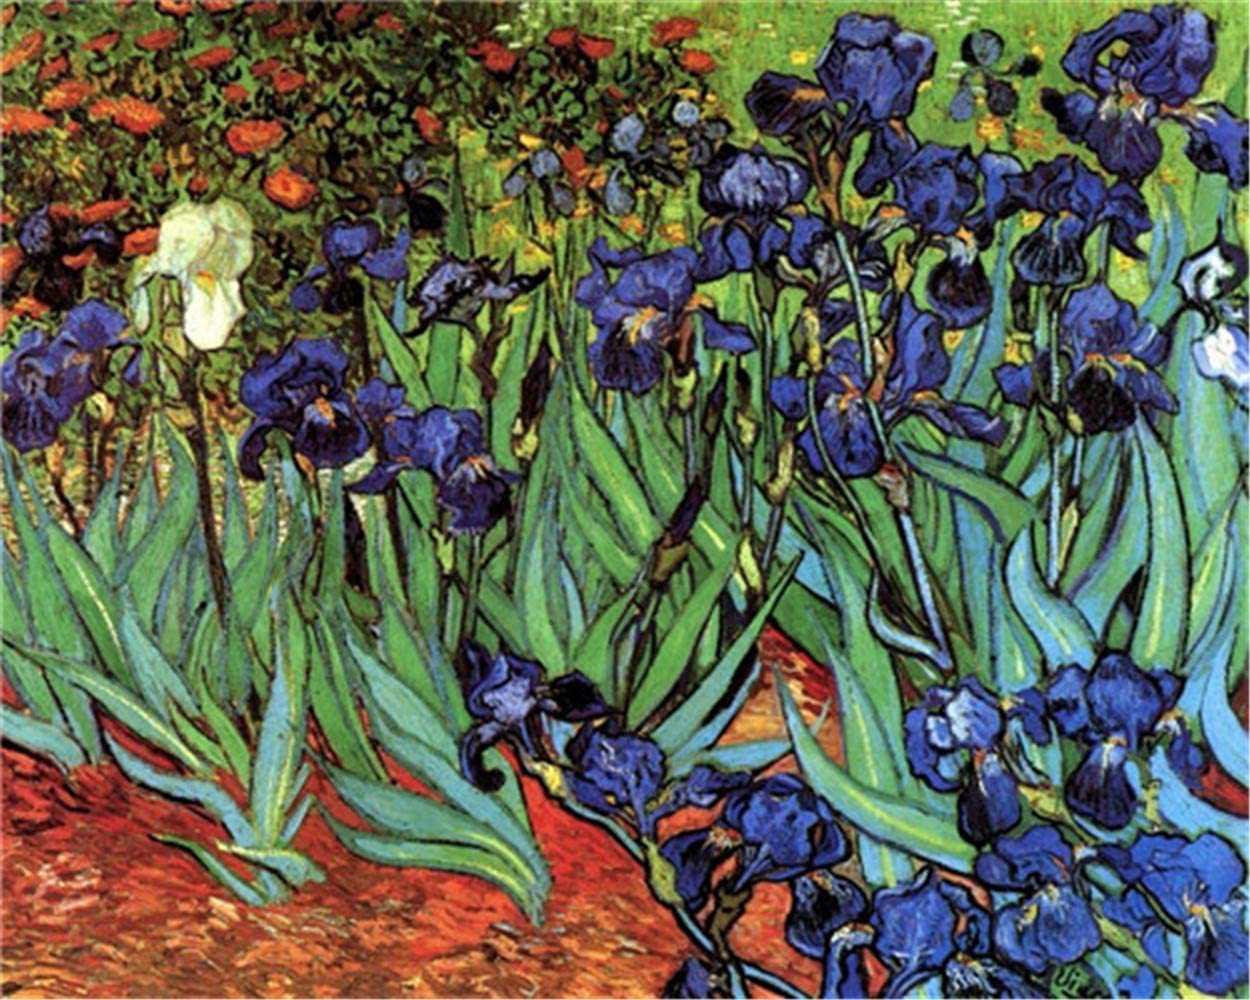 YEESAM ART Paint by Numbers for Adults Kids, Iris Flowers by Van Gogh 16x20 Inch Linen Canvas Acrylic DIY Number Painting Kits Wall Art Decor Gifts (Framed)